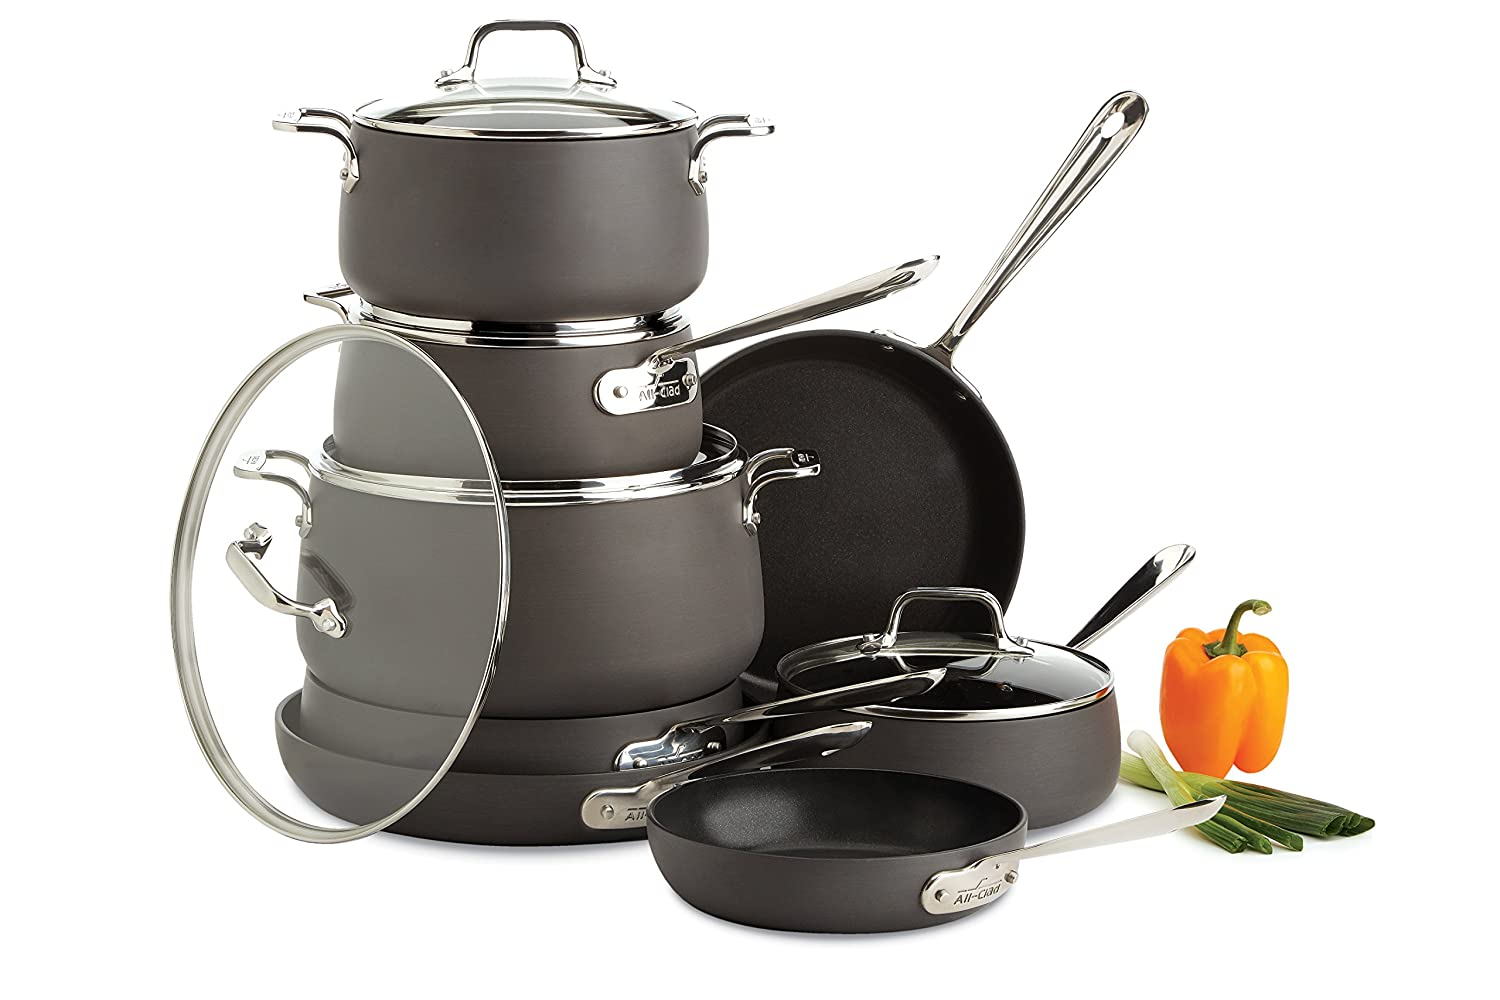 All-Clad Best hard anodized cookware